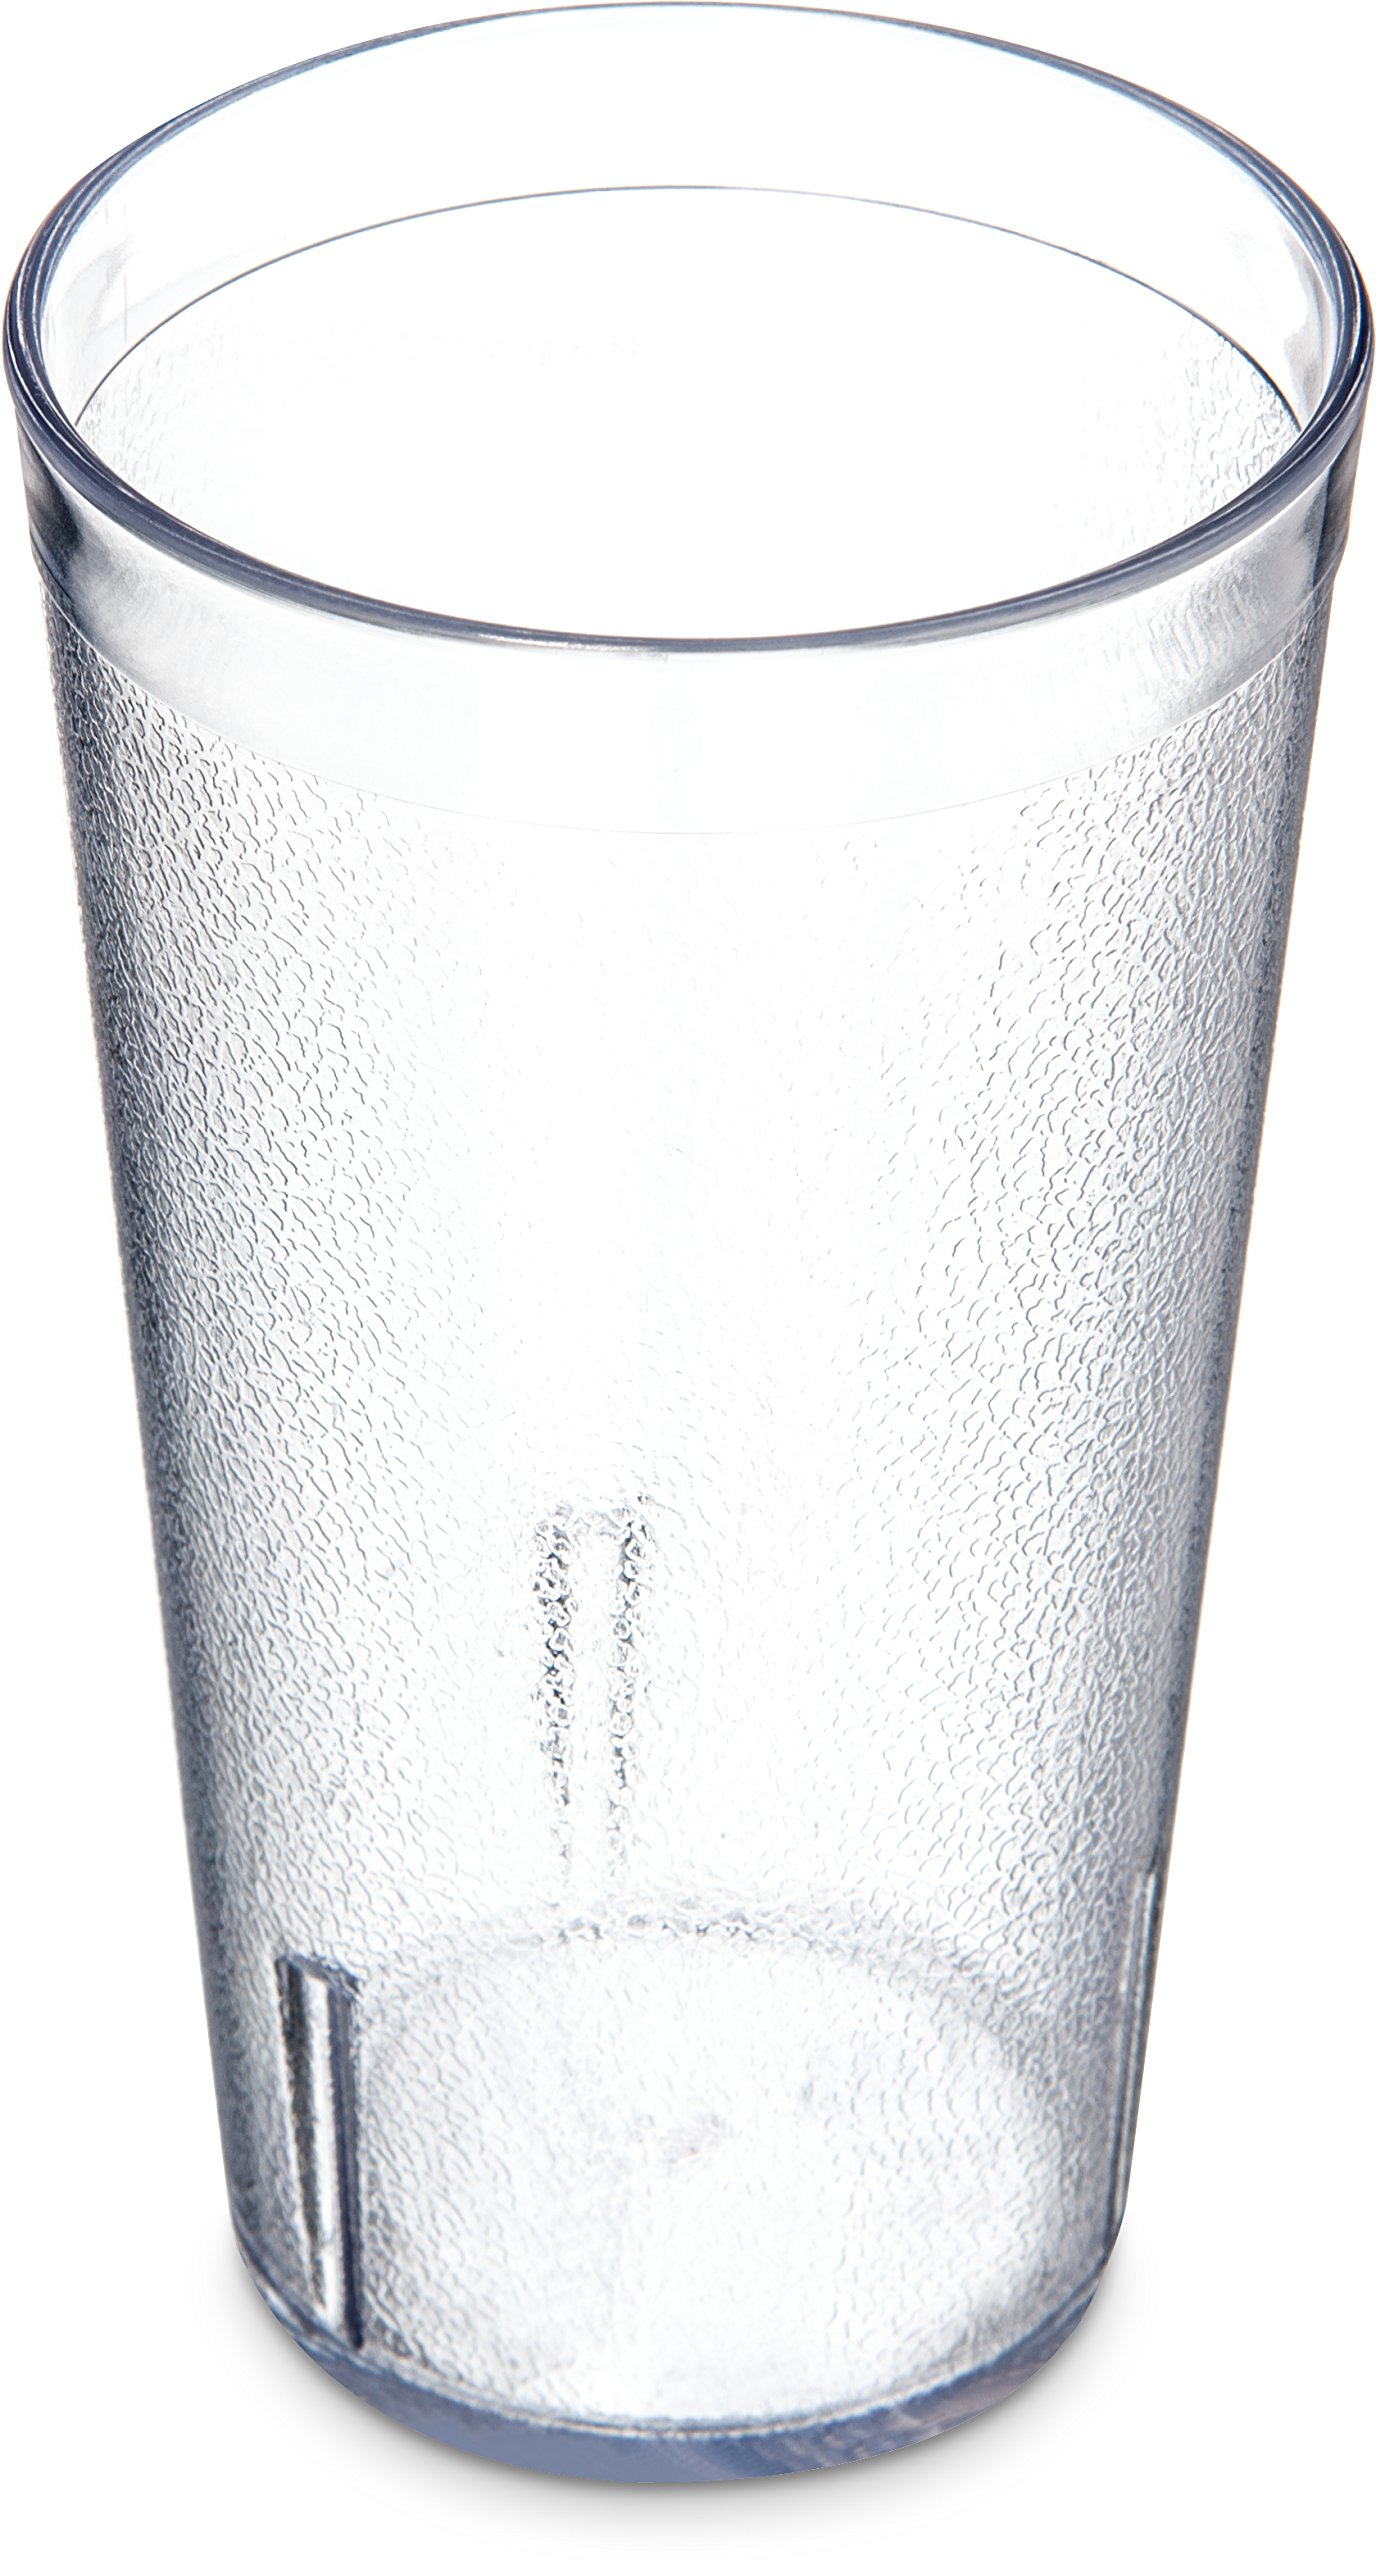 Carlisle 5216-207 Stackable Shatter-Resistant Plastic Tumbler, 16 oz., Clear (Pack of 24)